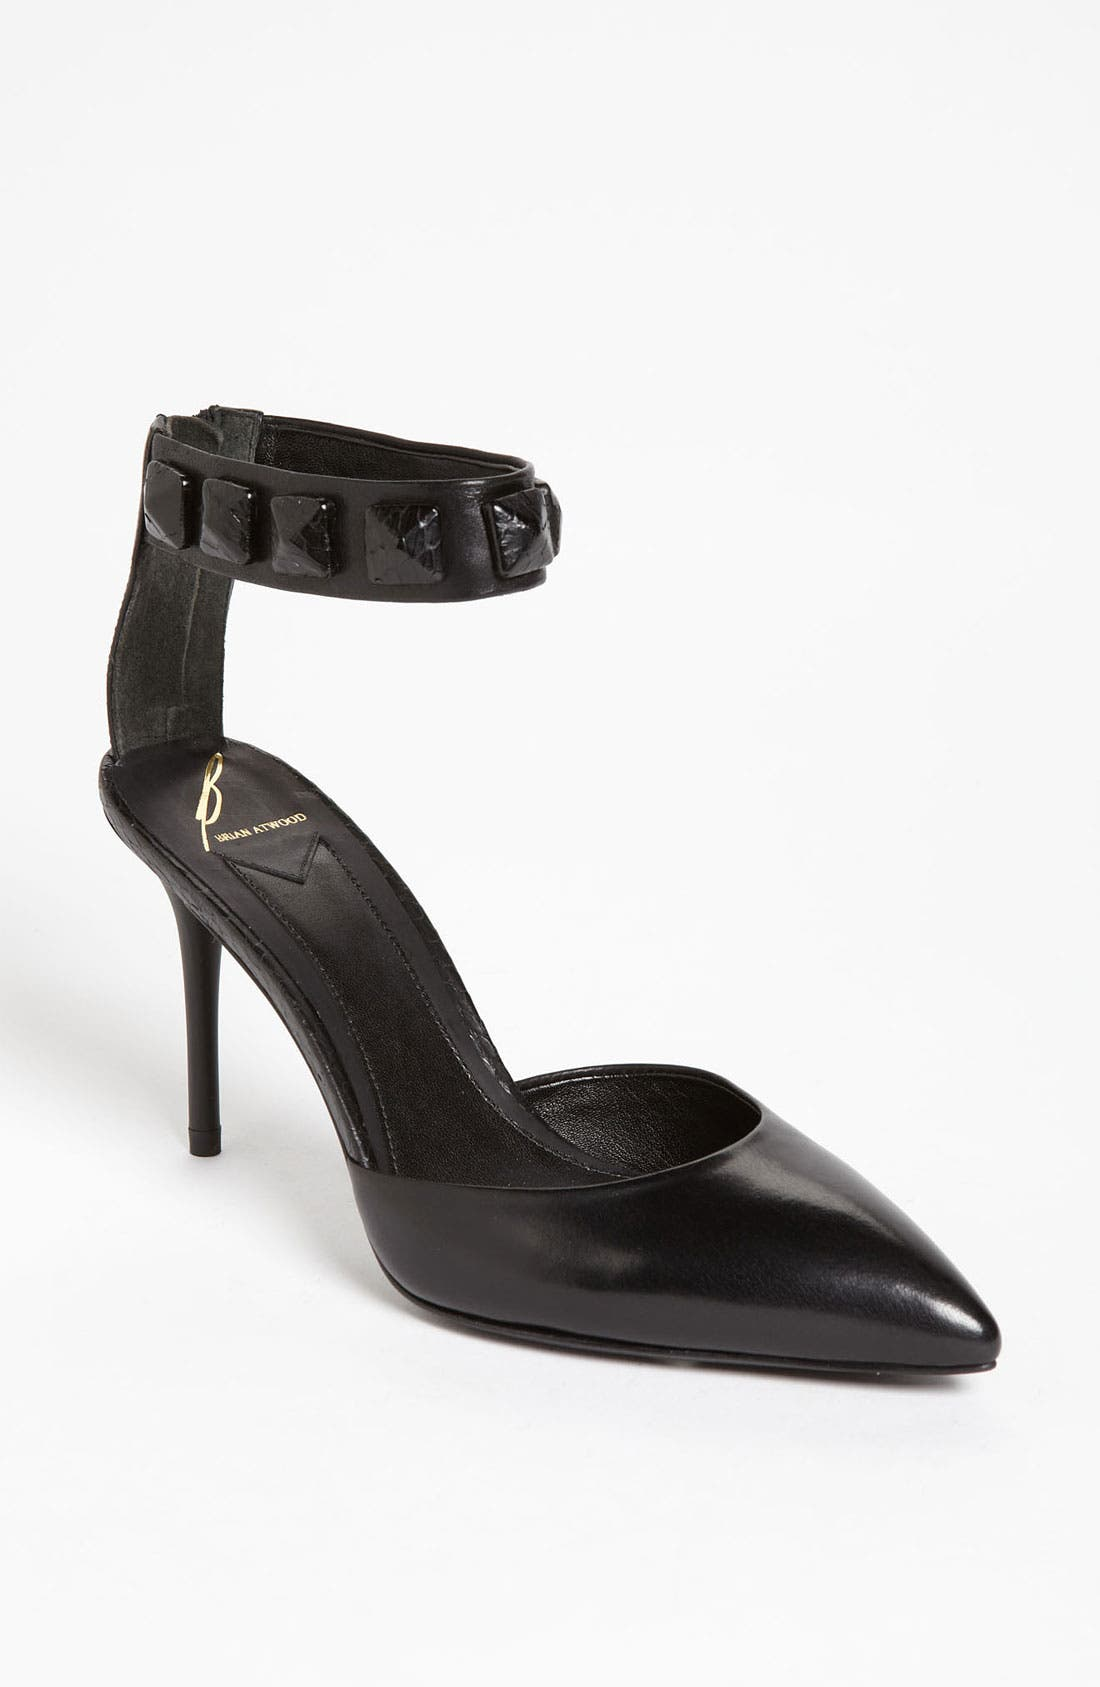 Alternate Image 1 Selected - B Brian Atwood 'Mercada' Pump